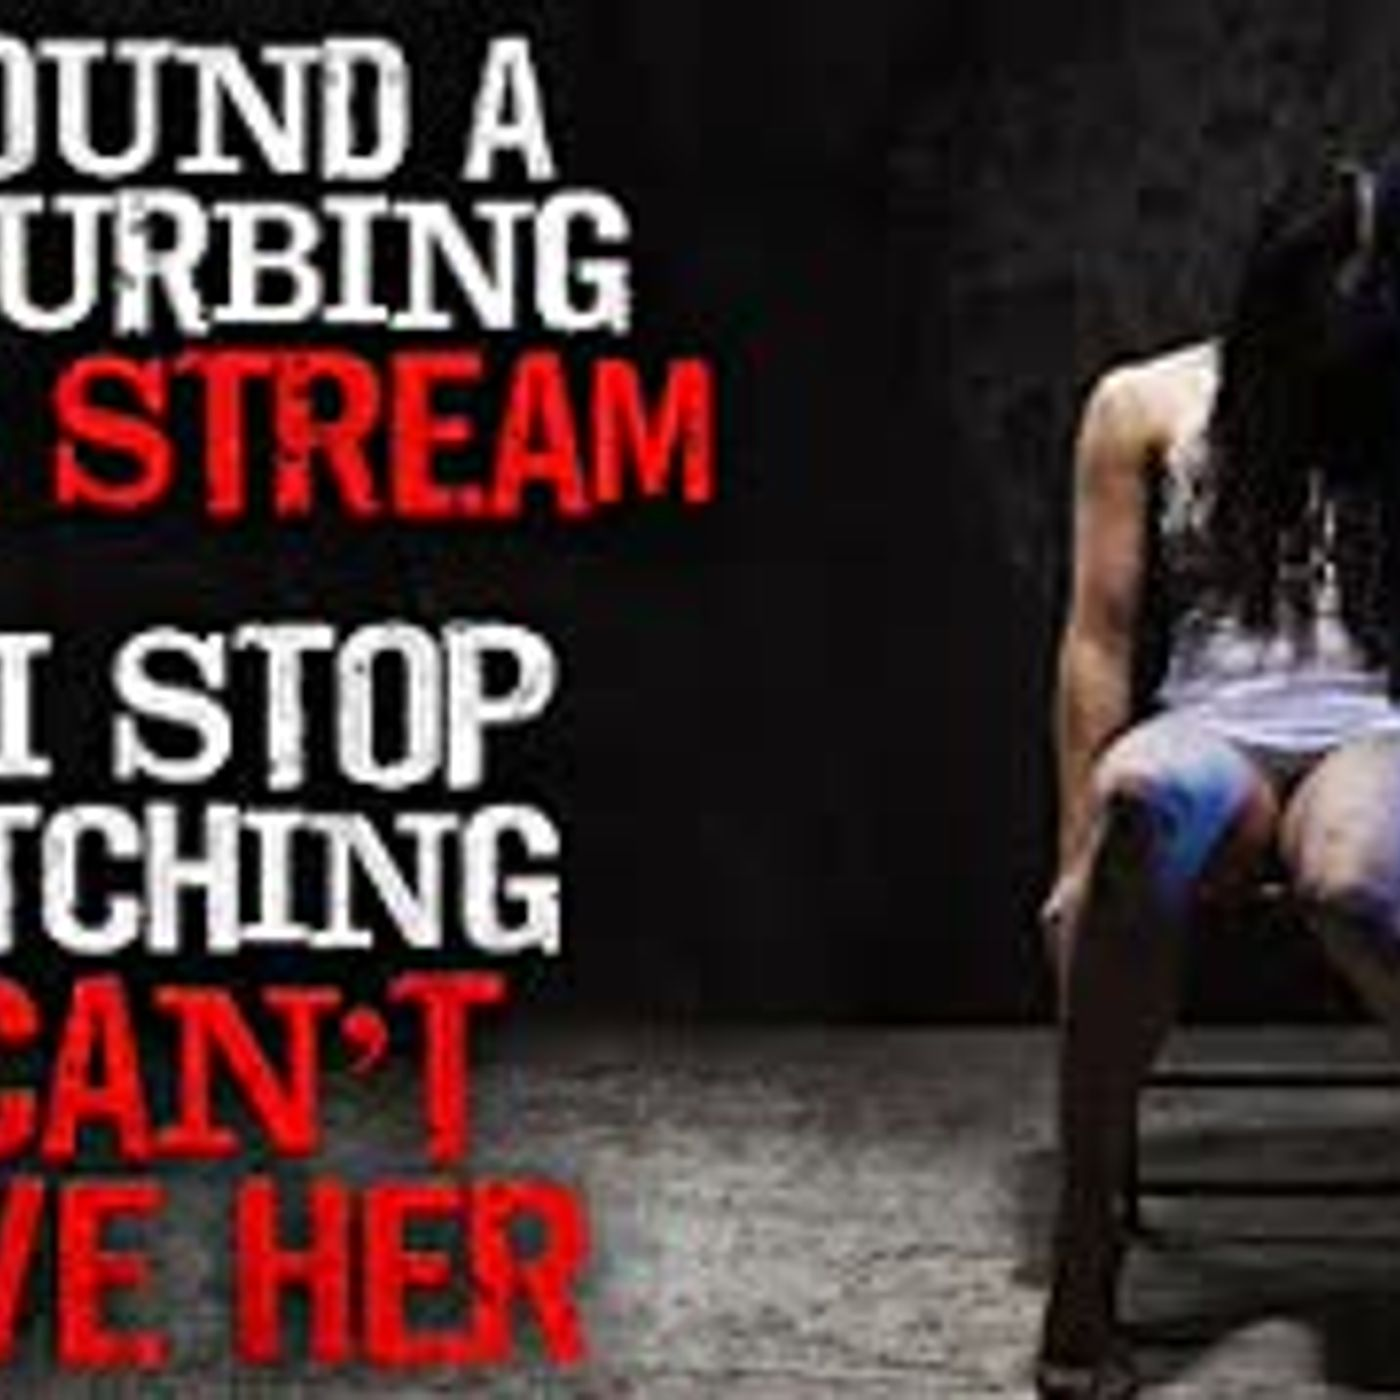 """I found a disturbing yoga stream. If I stop watching, I can't save her"" Creepypasta"